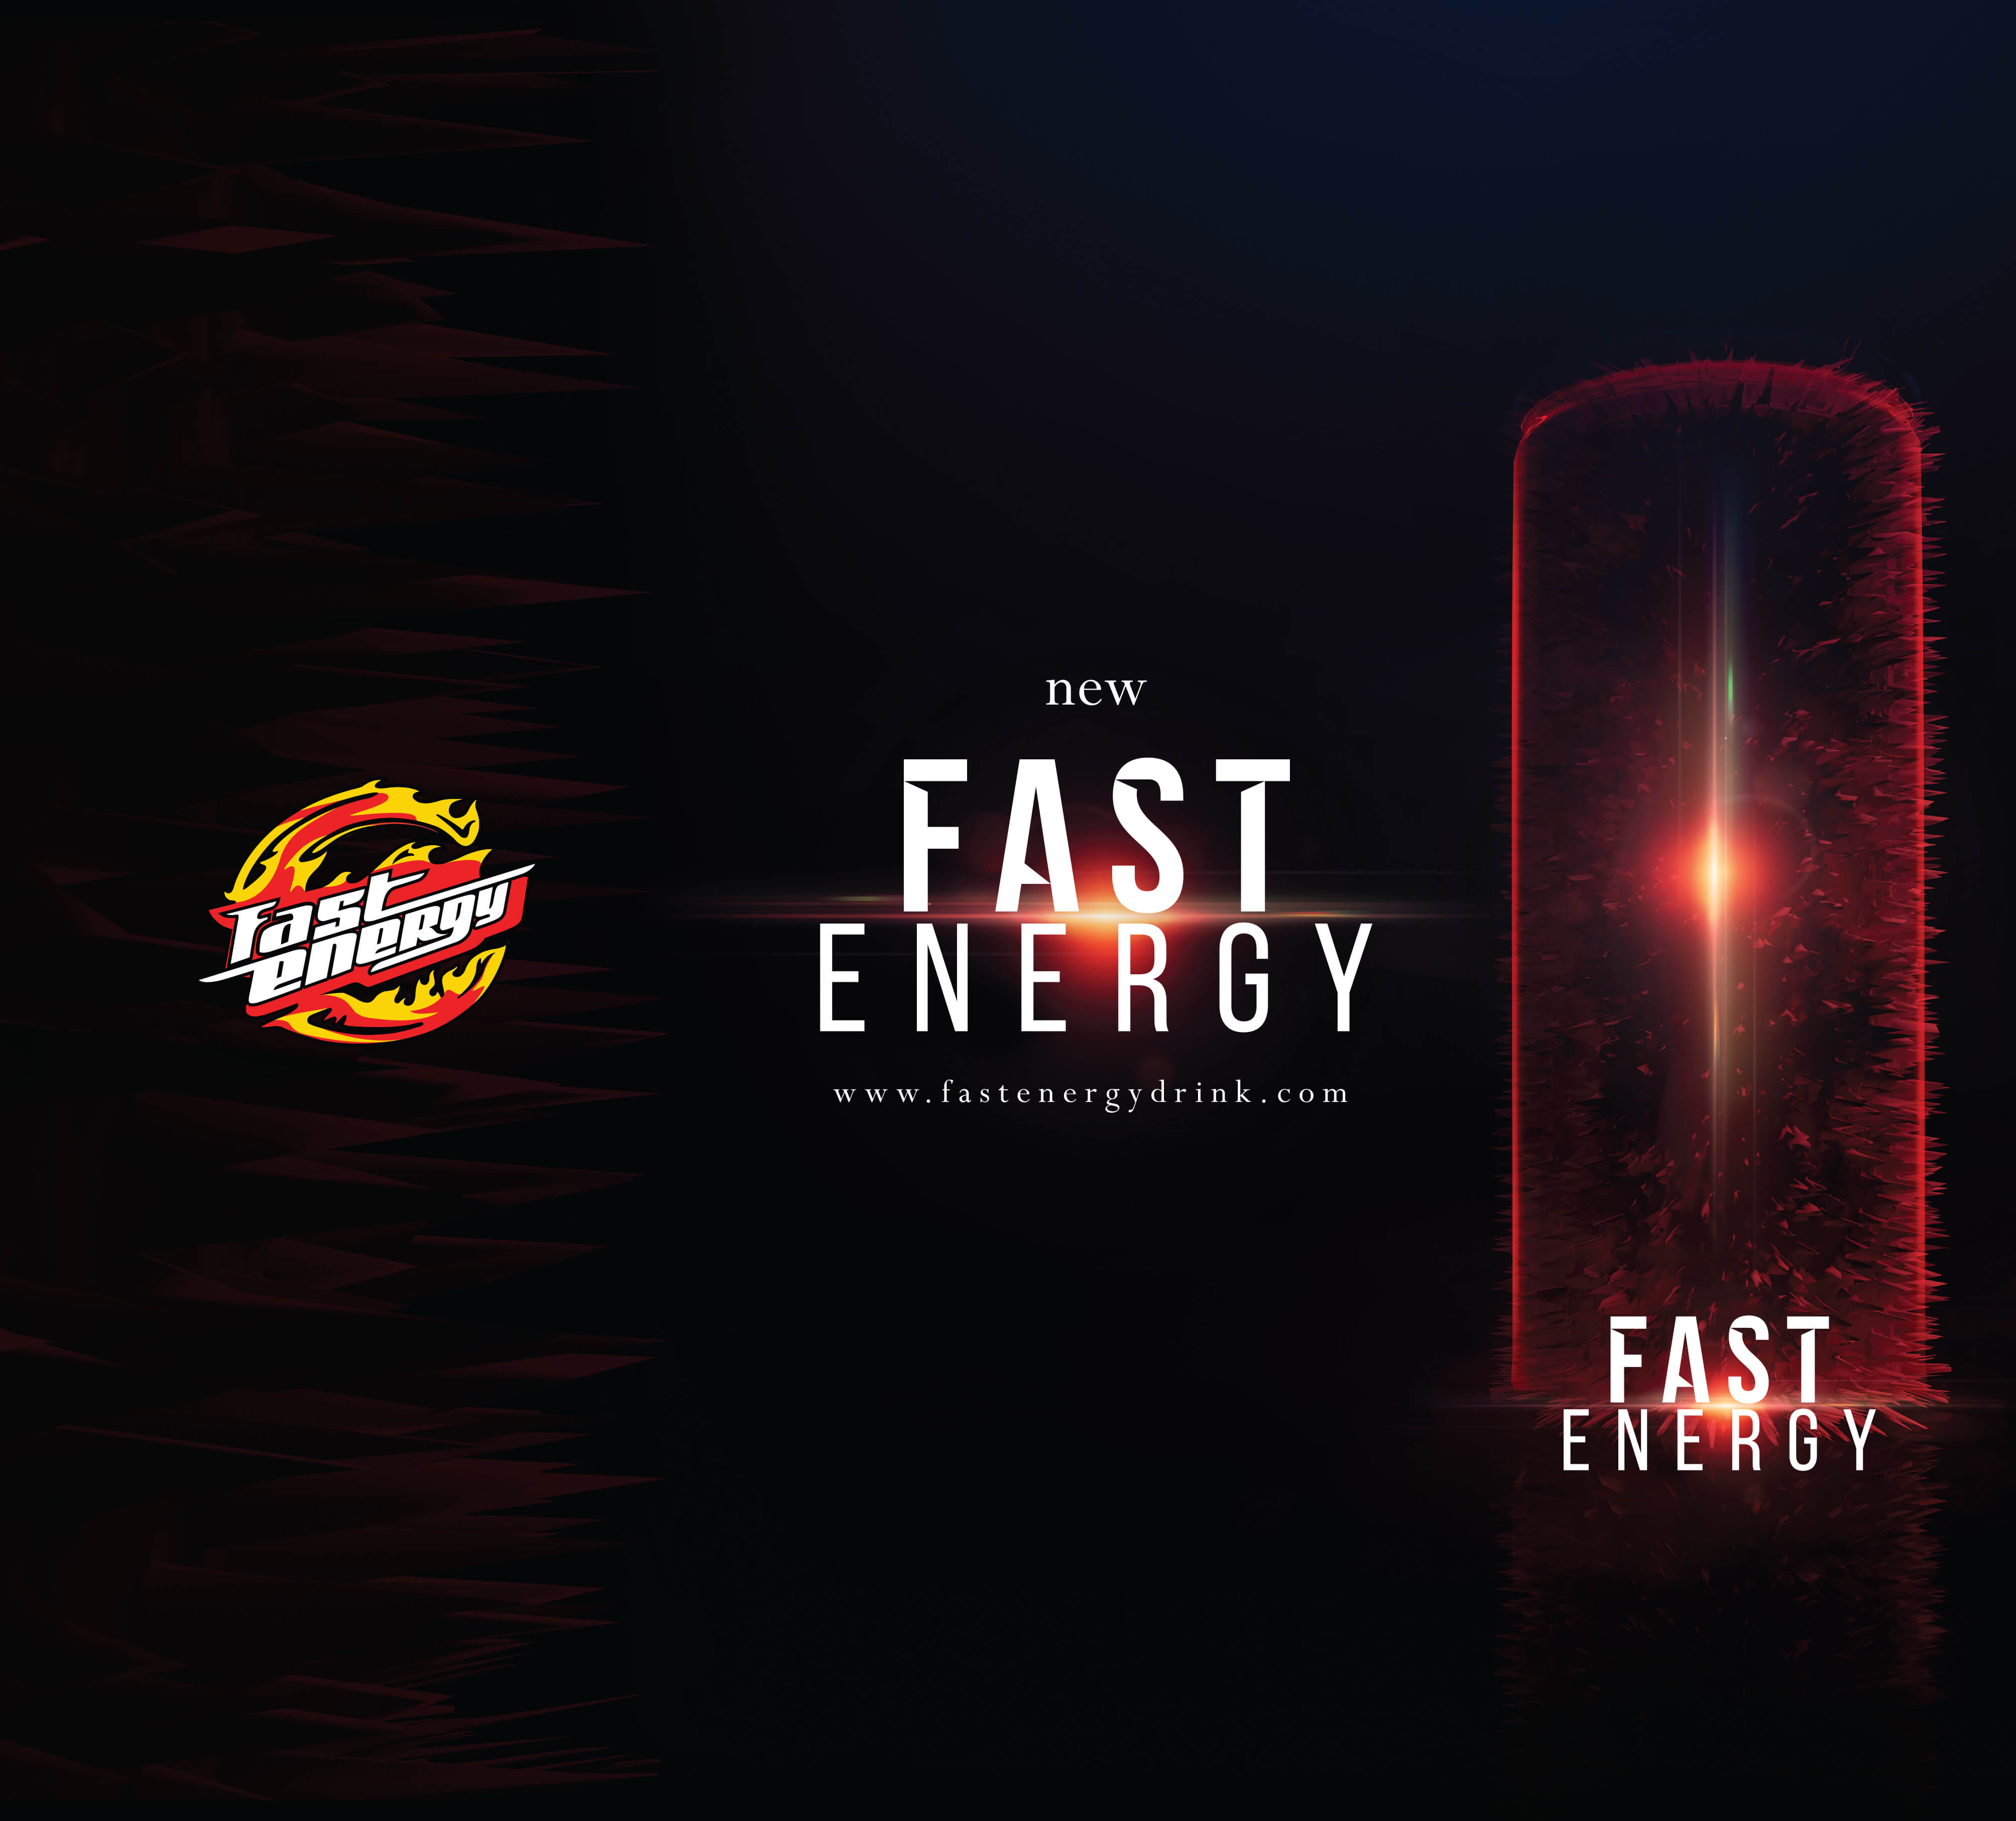 New Fast Energy